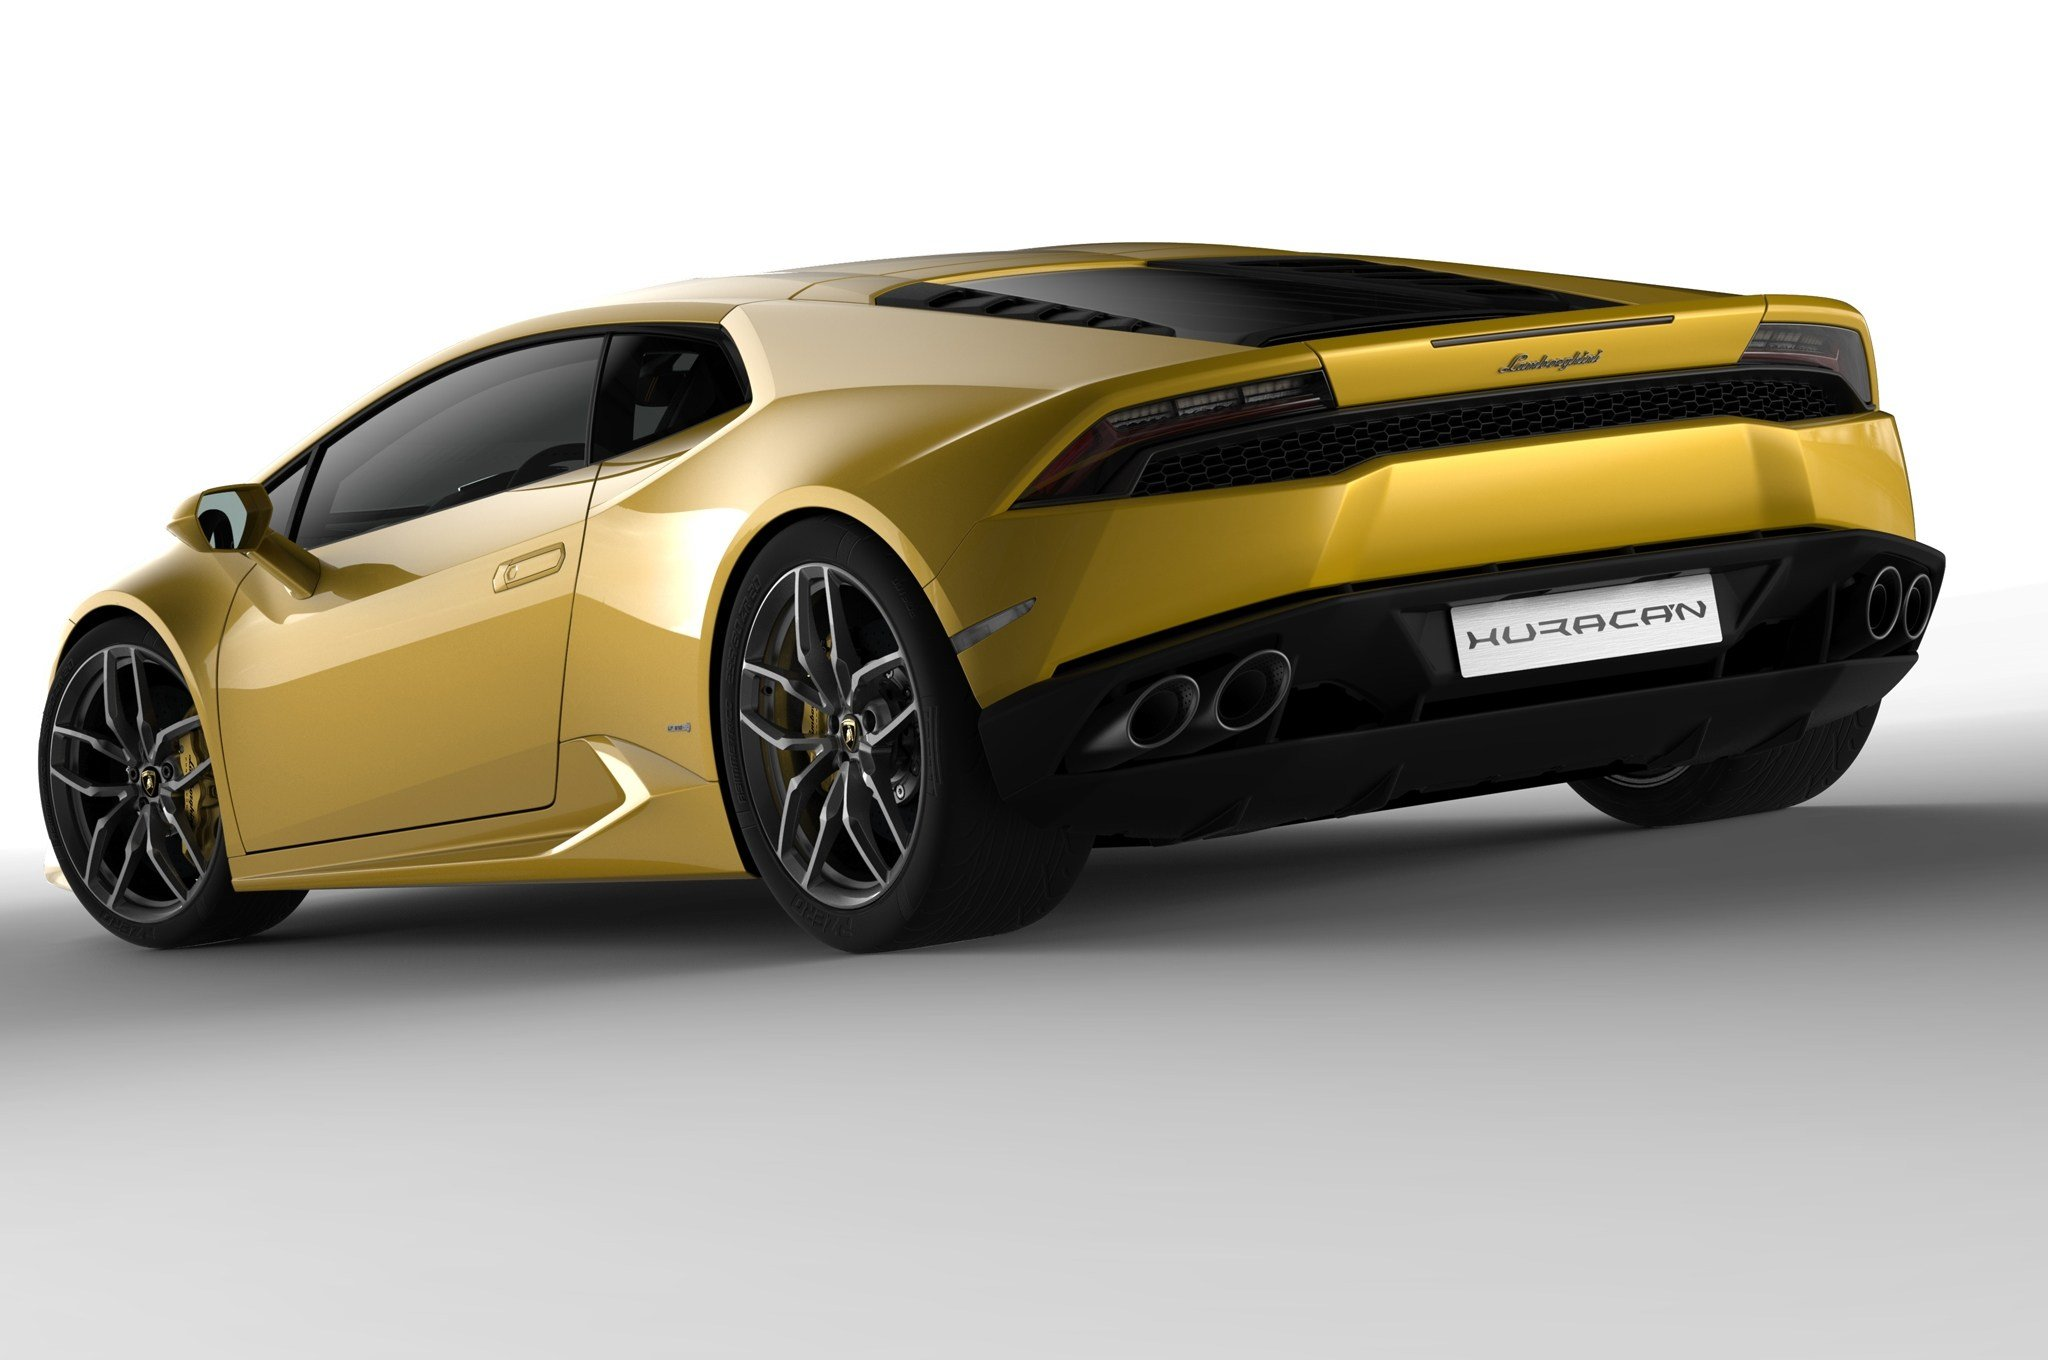 Latest 2015 Lamborghini Huracan 19 Free Car Wallpaper Free Download